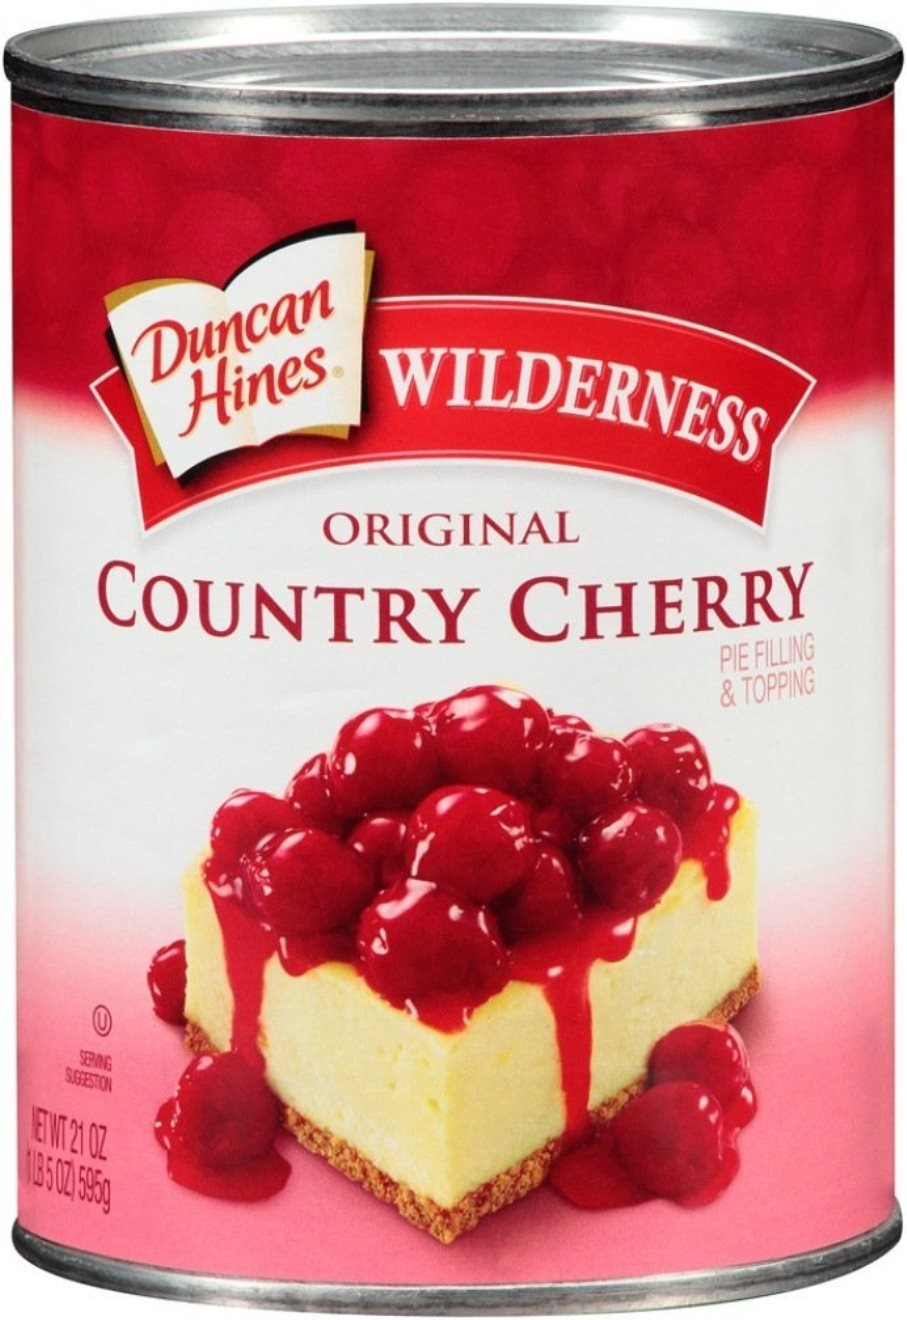 Wilderness Original Pie Filling and Topping, Country Cherry, 21 Ounce